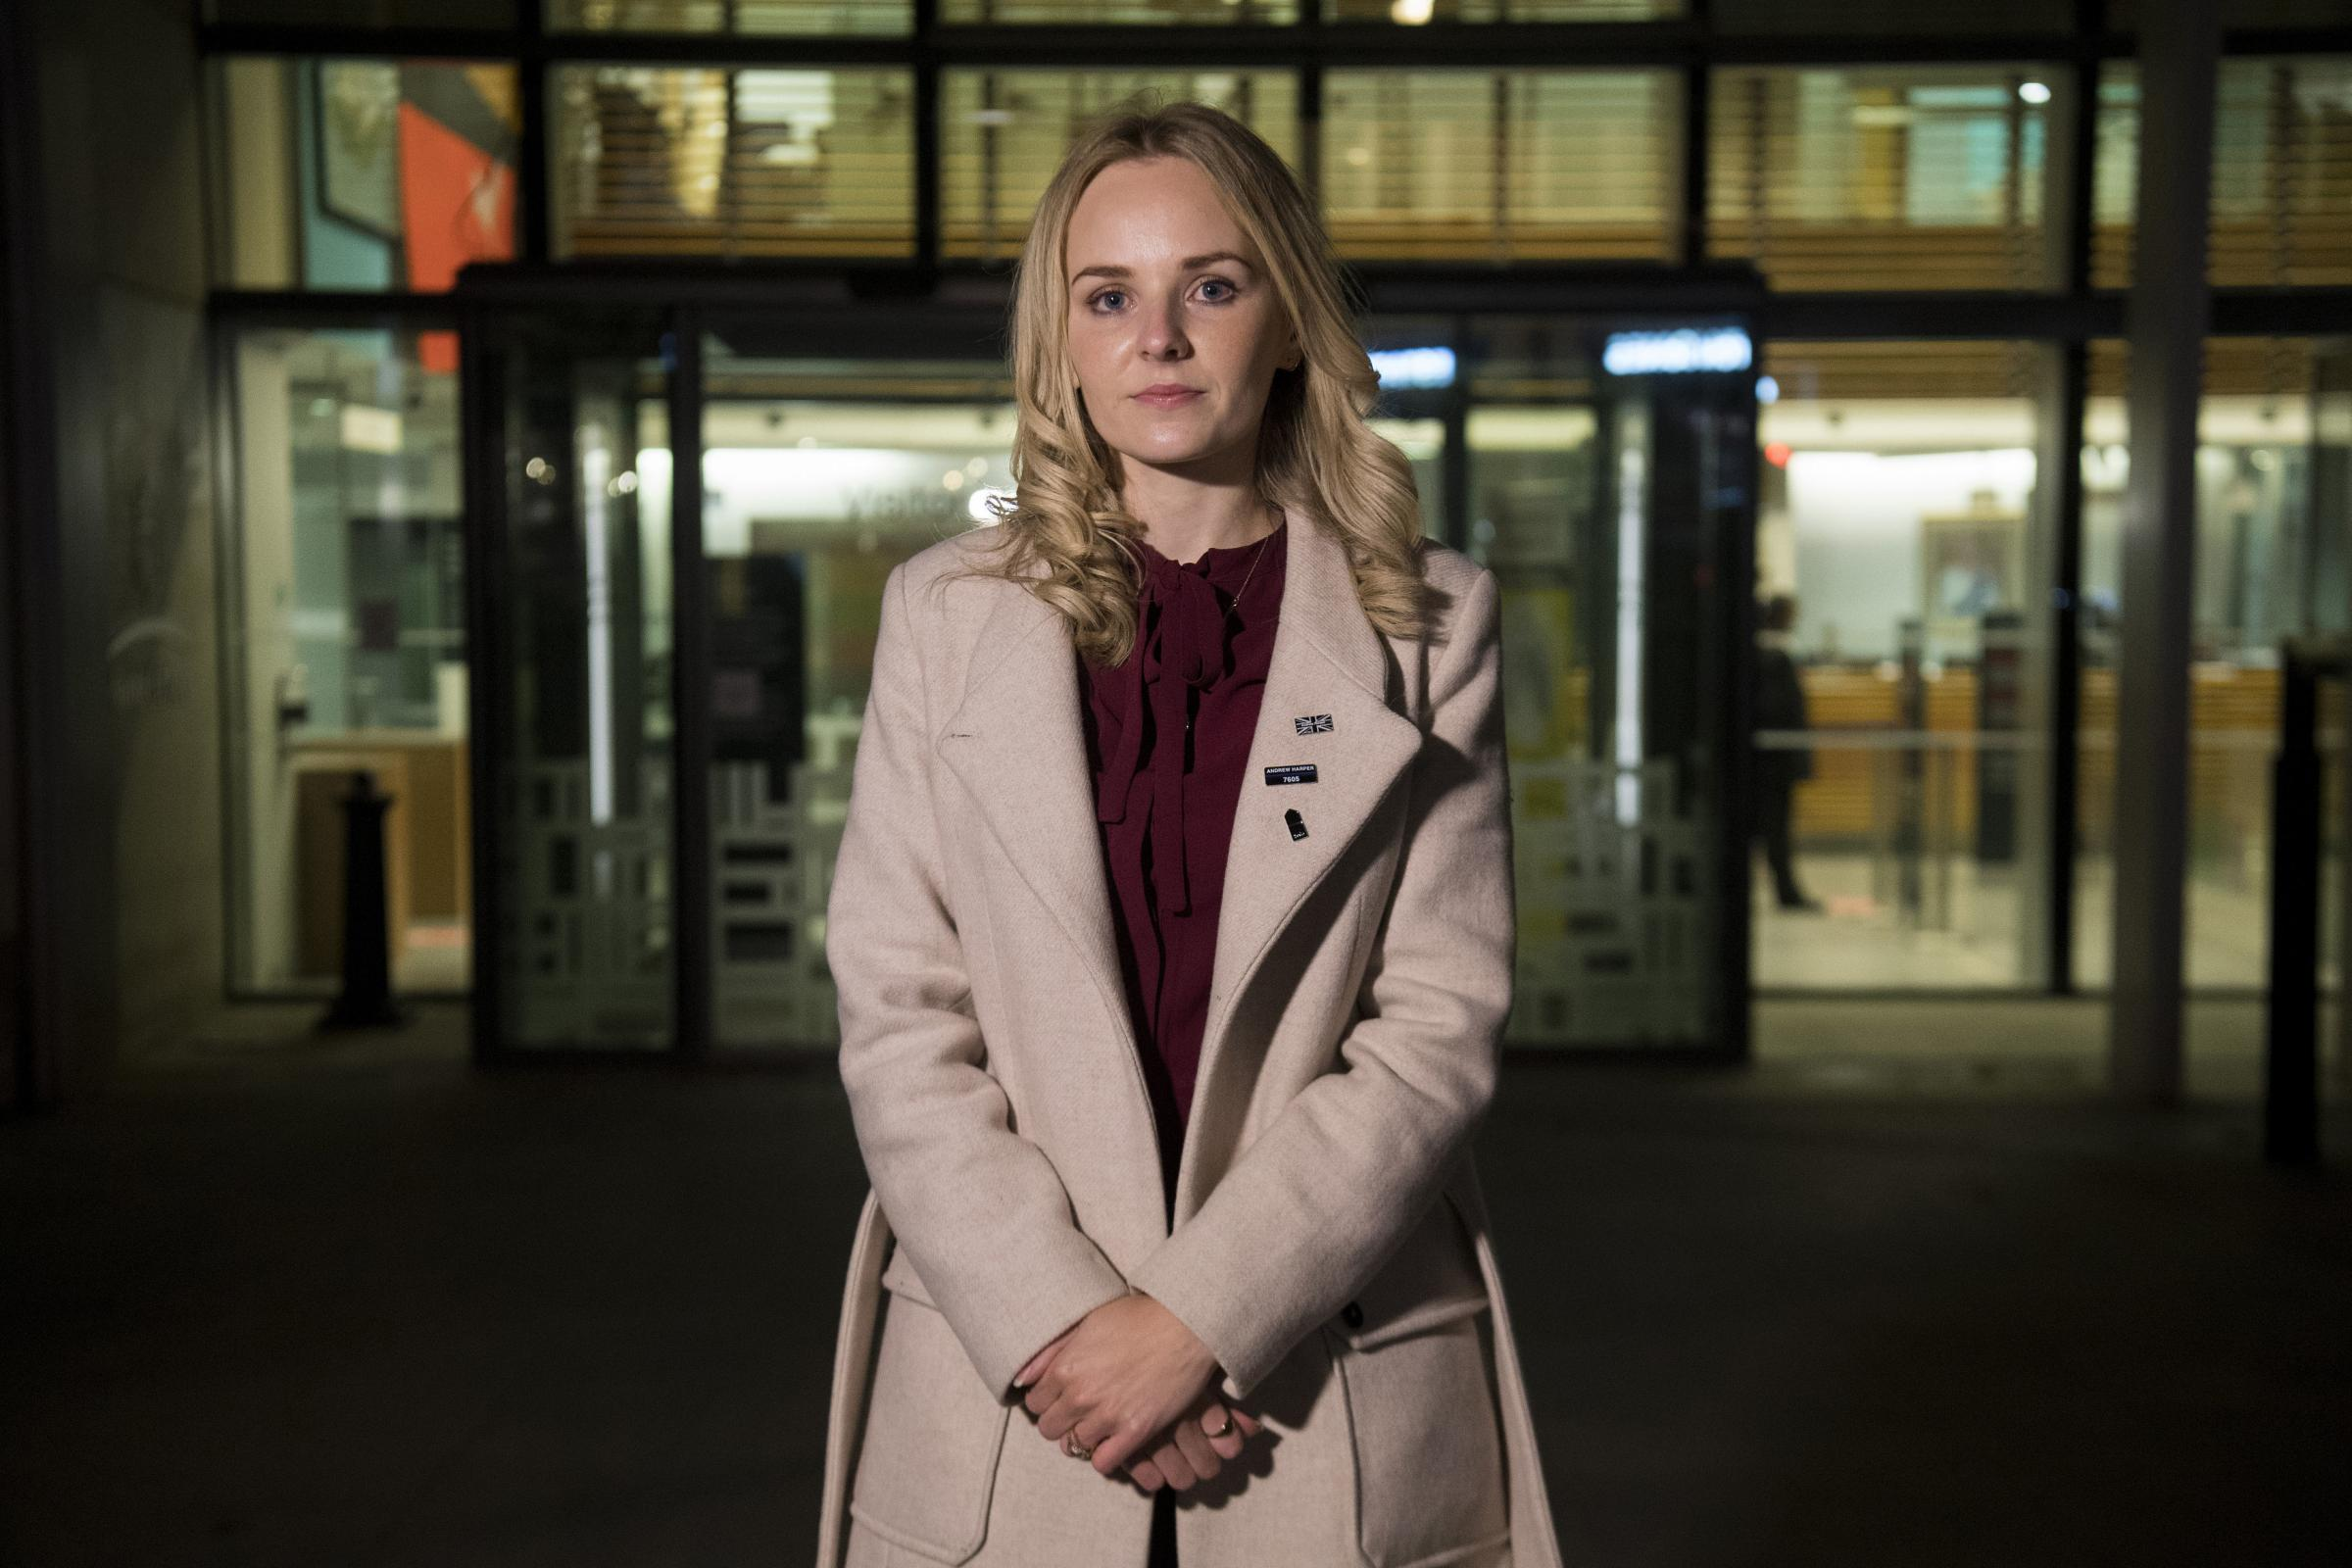 Lissie Harper, the widow of Pc Andrew Harper, at the Home Office in central London after meeting with Home Secretary Priti Patel. PA Photo. Picture date: Monday November 2, 2020. This was the second meeting between the pair on the push for Harpers Law,